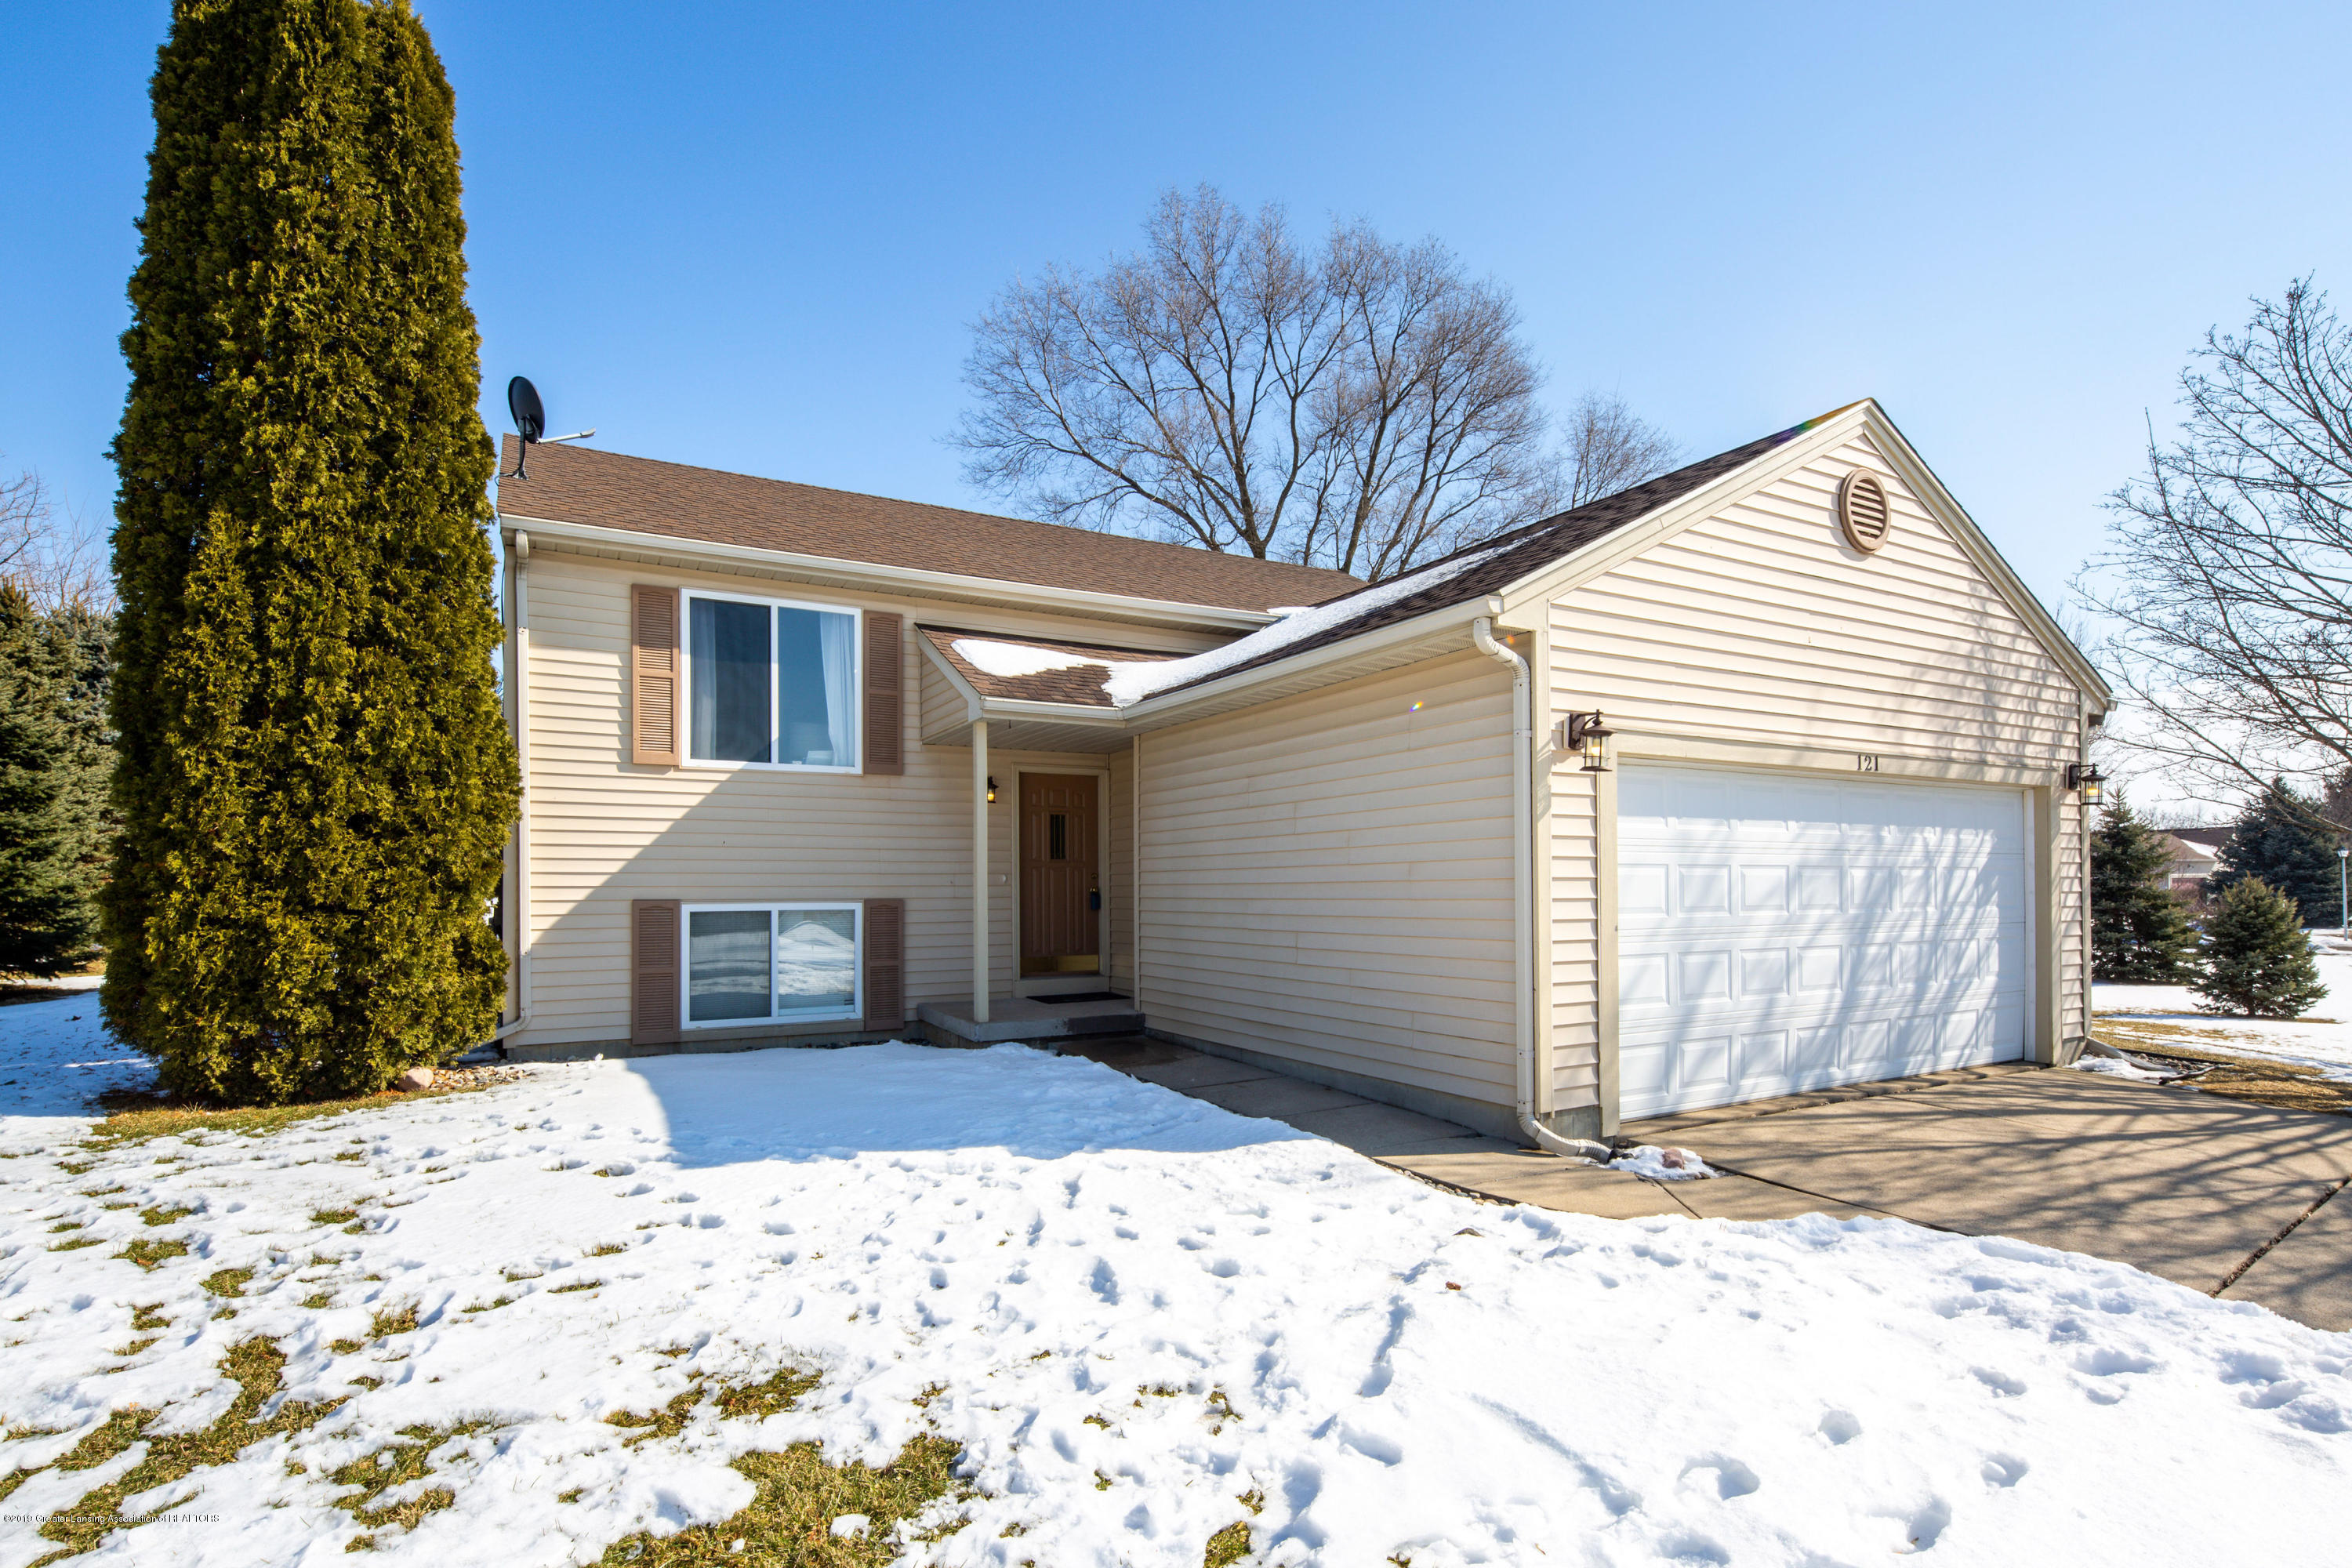 121 Country Lake Dr - 20190222-942A6791-HDR - 1